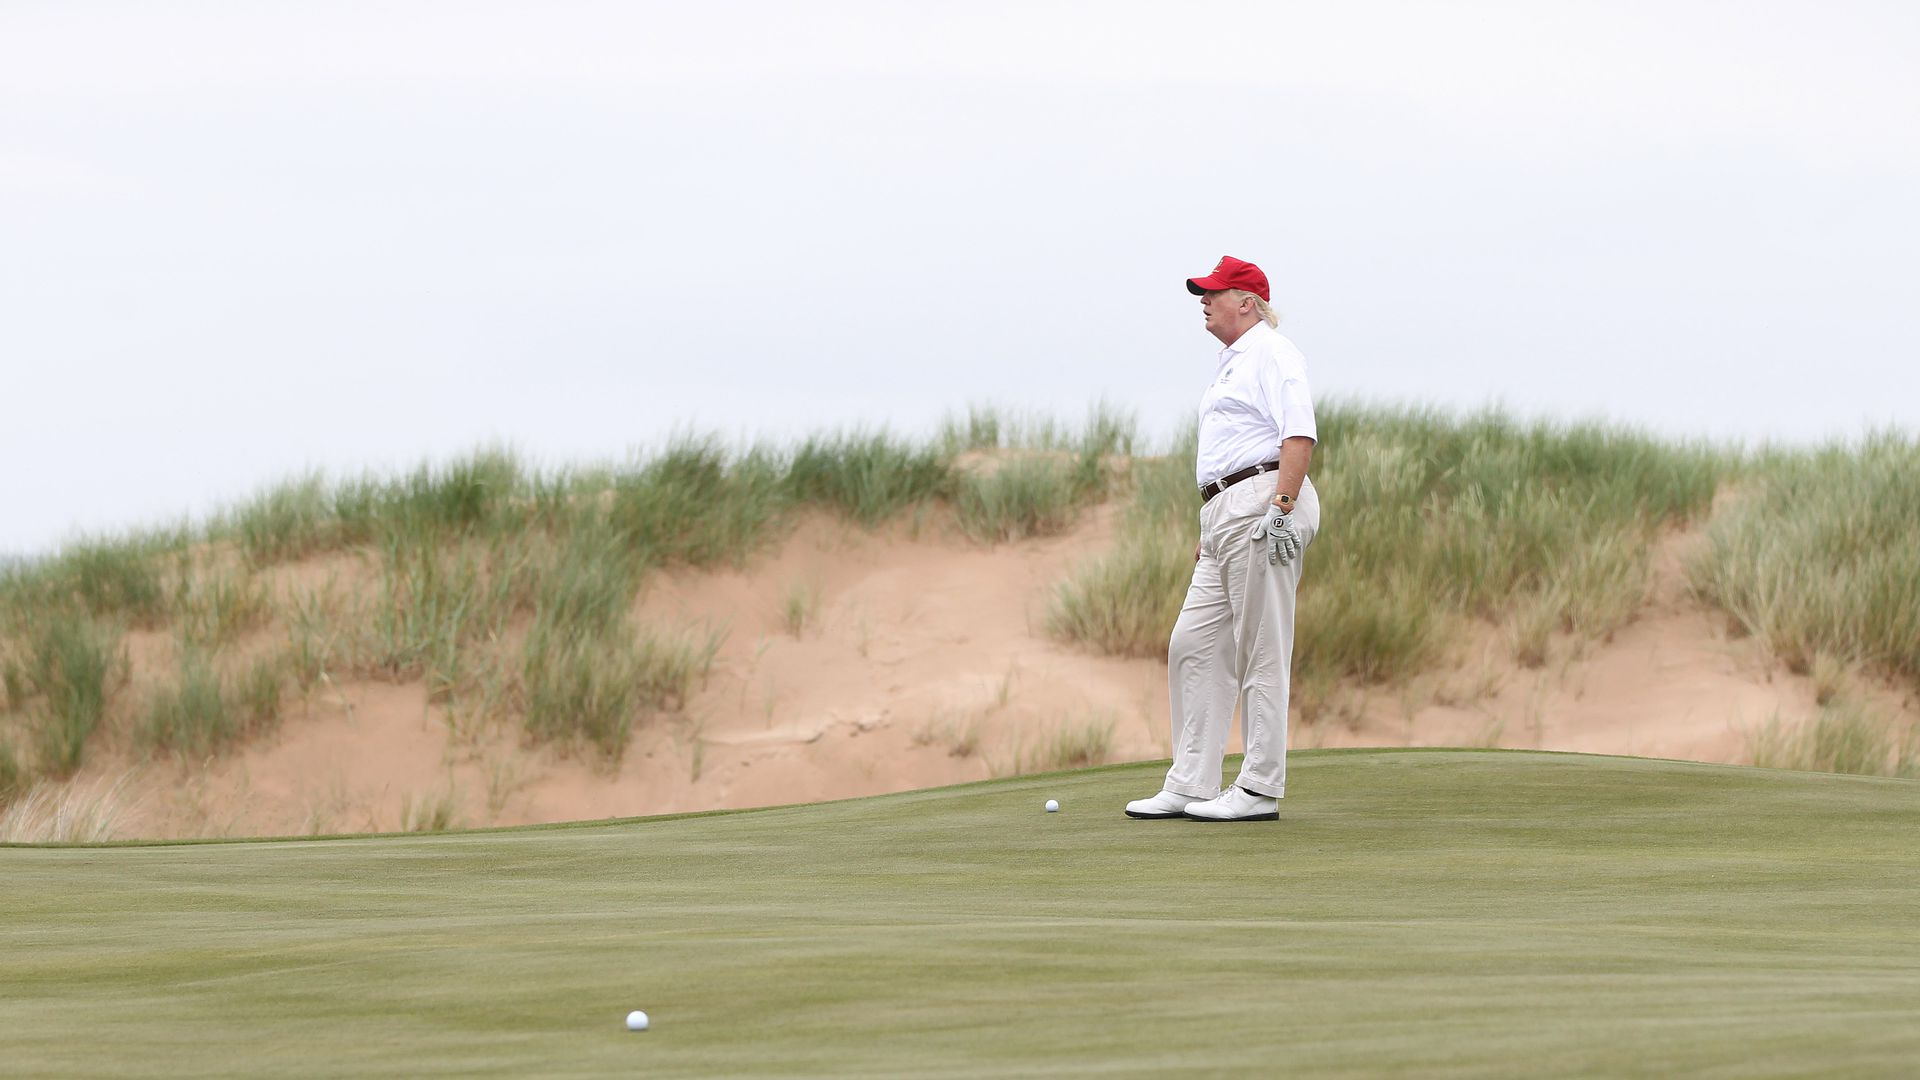 Trump at his golf course in Scotland